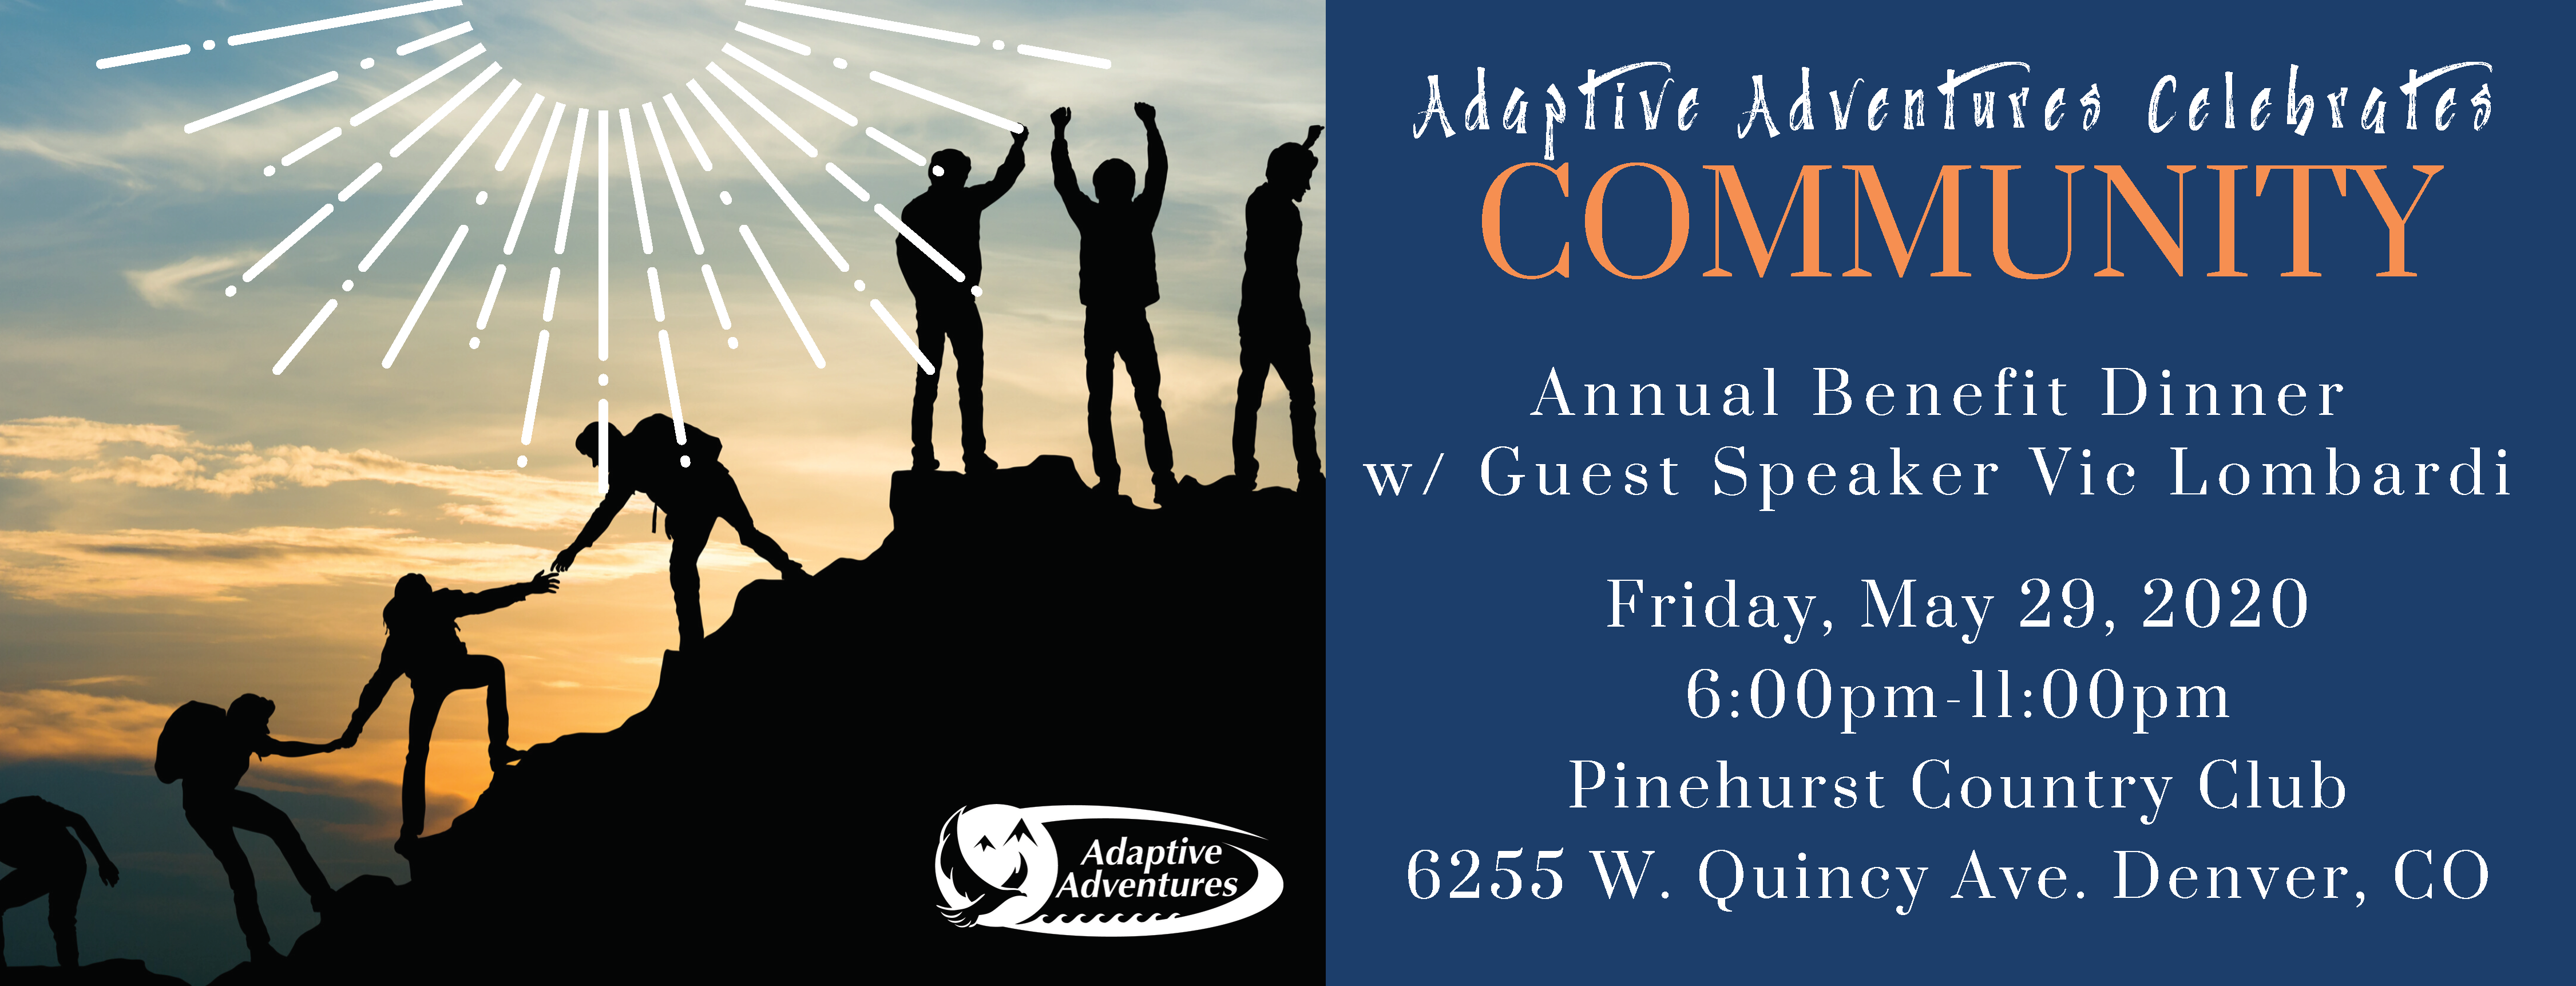 Adaptive Adventures Celebrate Community Fundraiser